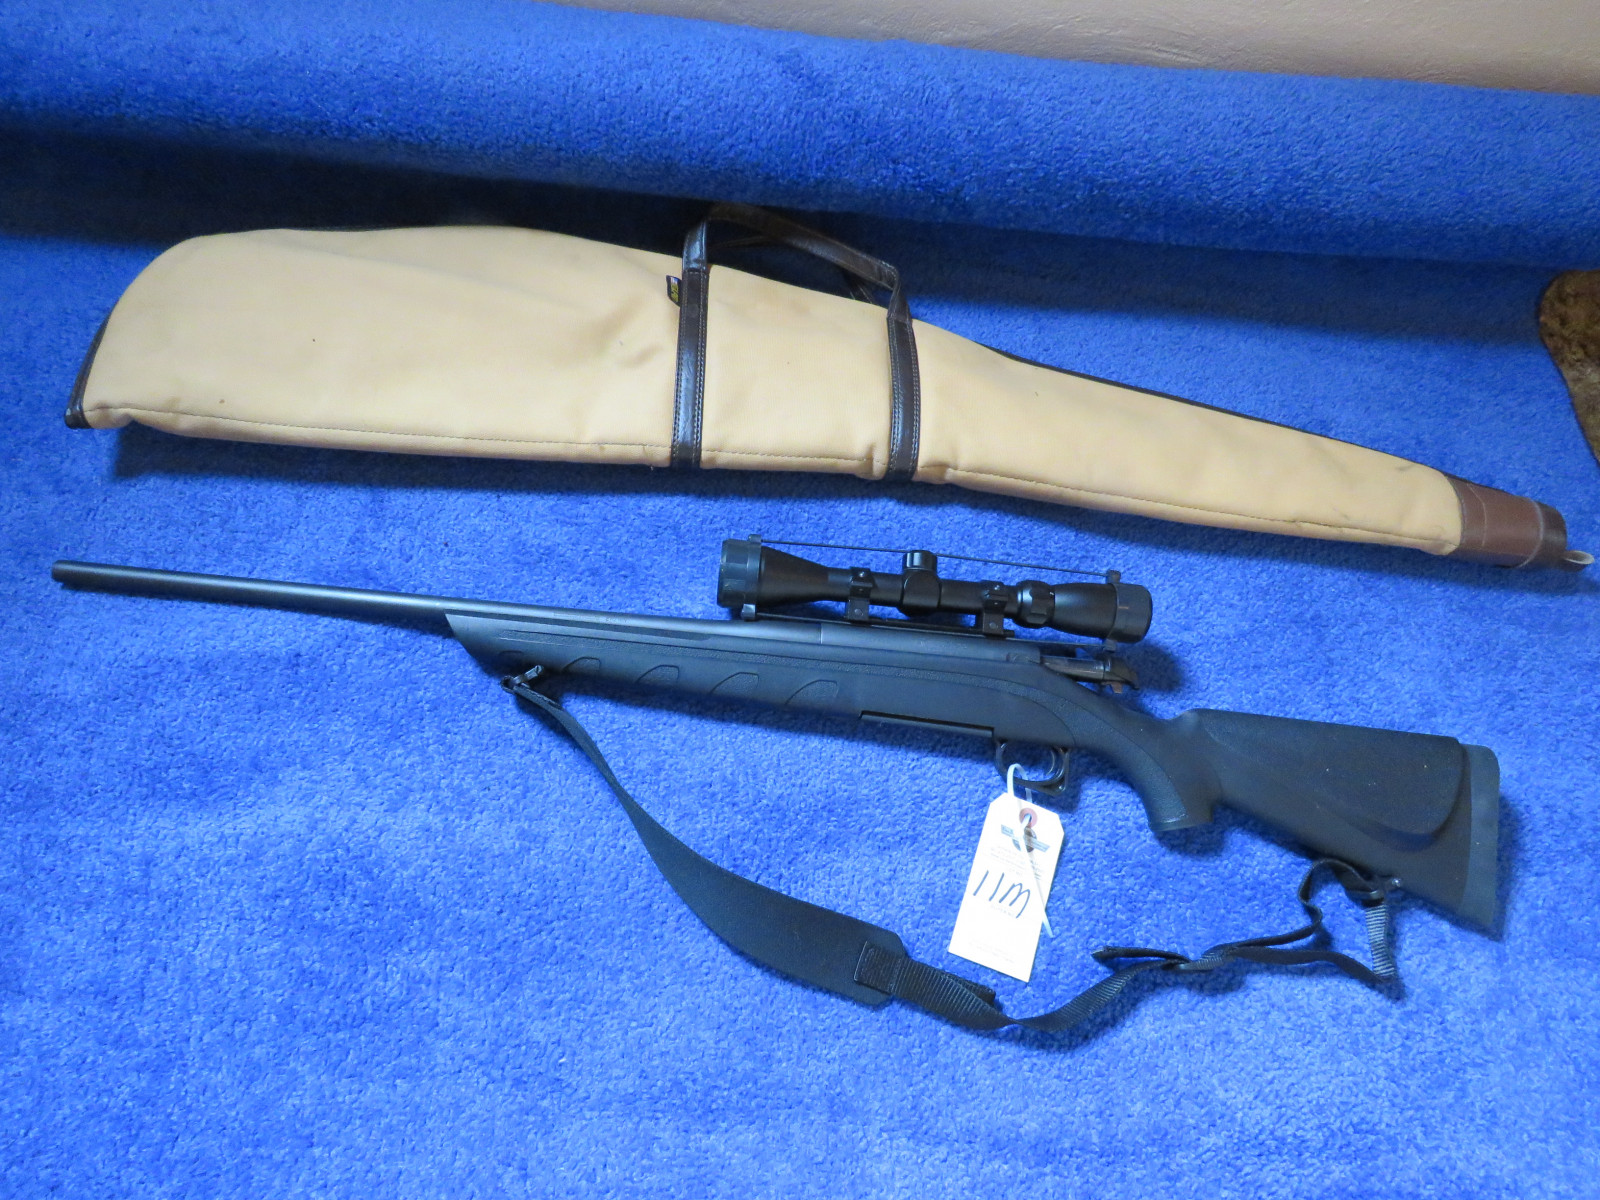 Remington Model 770 Bolt Action Rifle M71765489 - Image 2